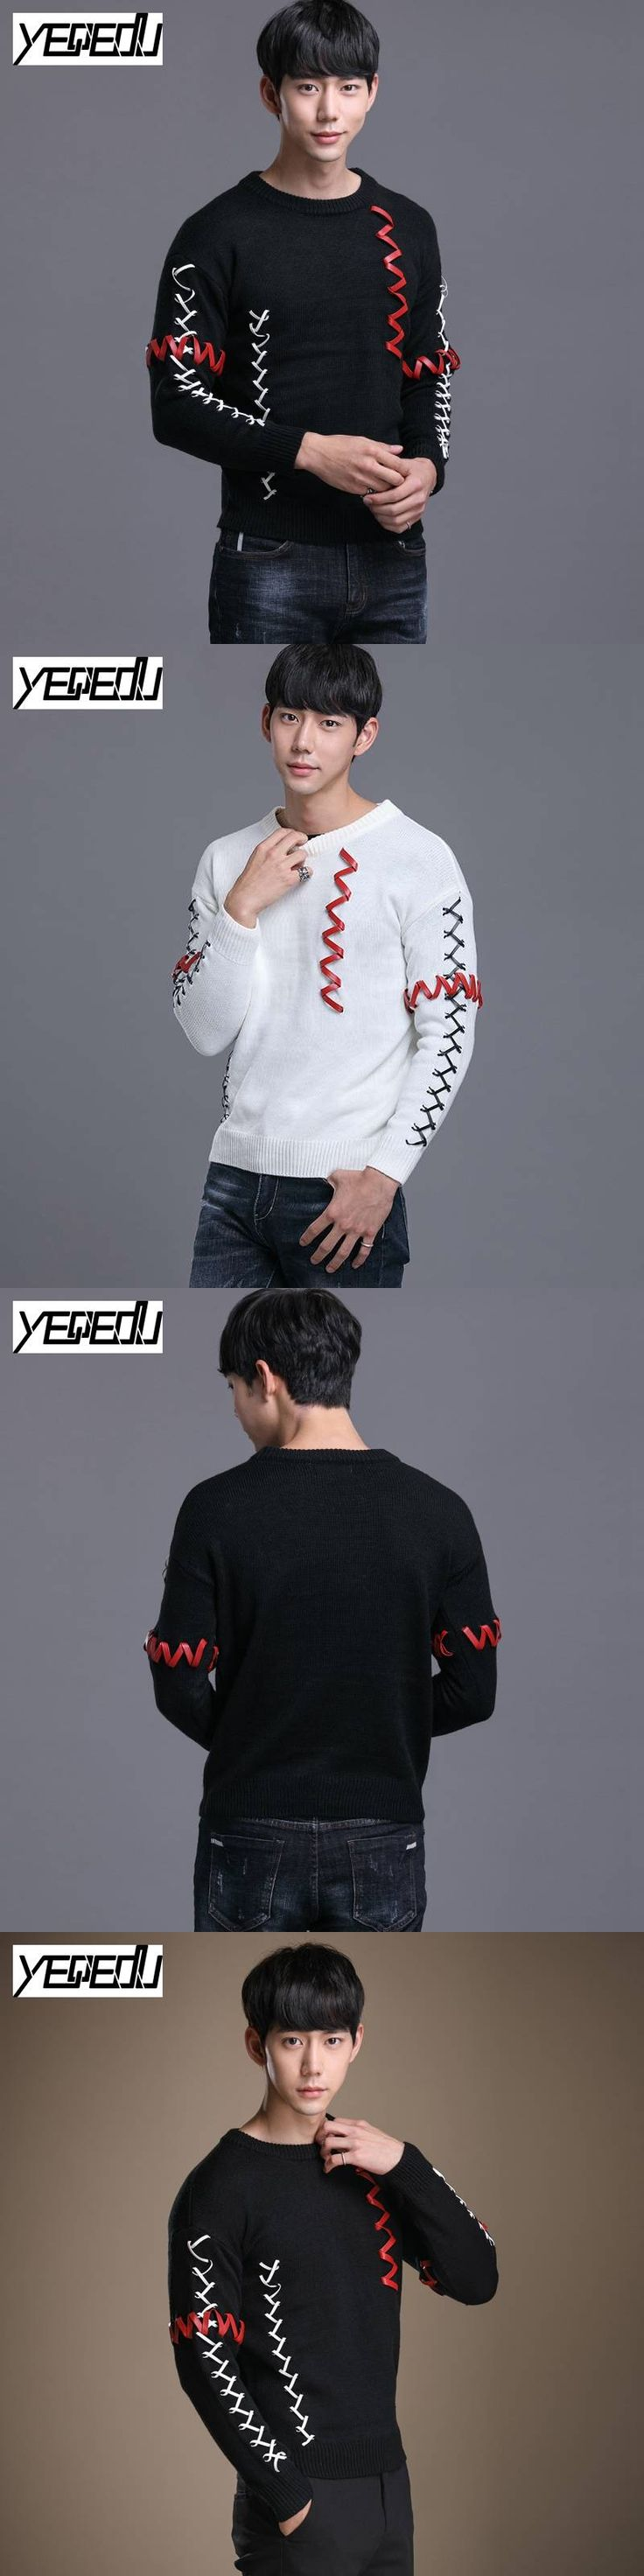 #1920 Winter Black/white sweater men Bandage England style High street Ribbons Knitted sweater Pullover Pull homme Mens jumpers